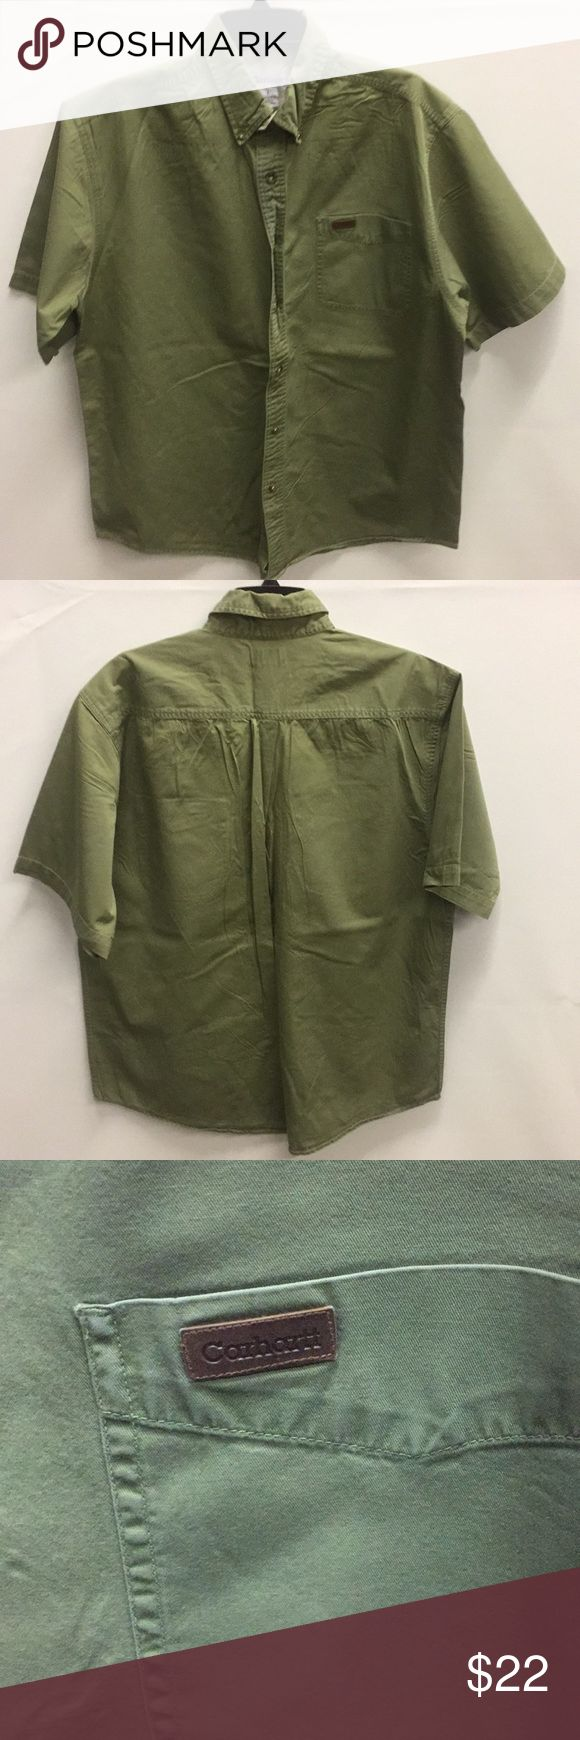 Carhartt Shirt Sleeve Work Shirt. Green with pocket on front with small leather Carhartt logo patch on it. 25In Chest, 33in Long and 26in Sleeves from wrist to shoulder. Shirt is a great for work or casual wear. Carhartt Shirts Casual Button Down Shirts